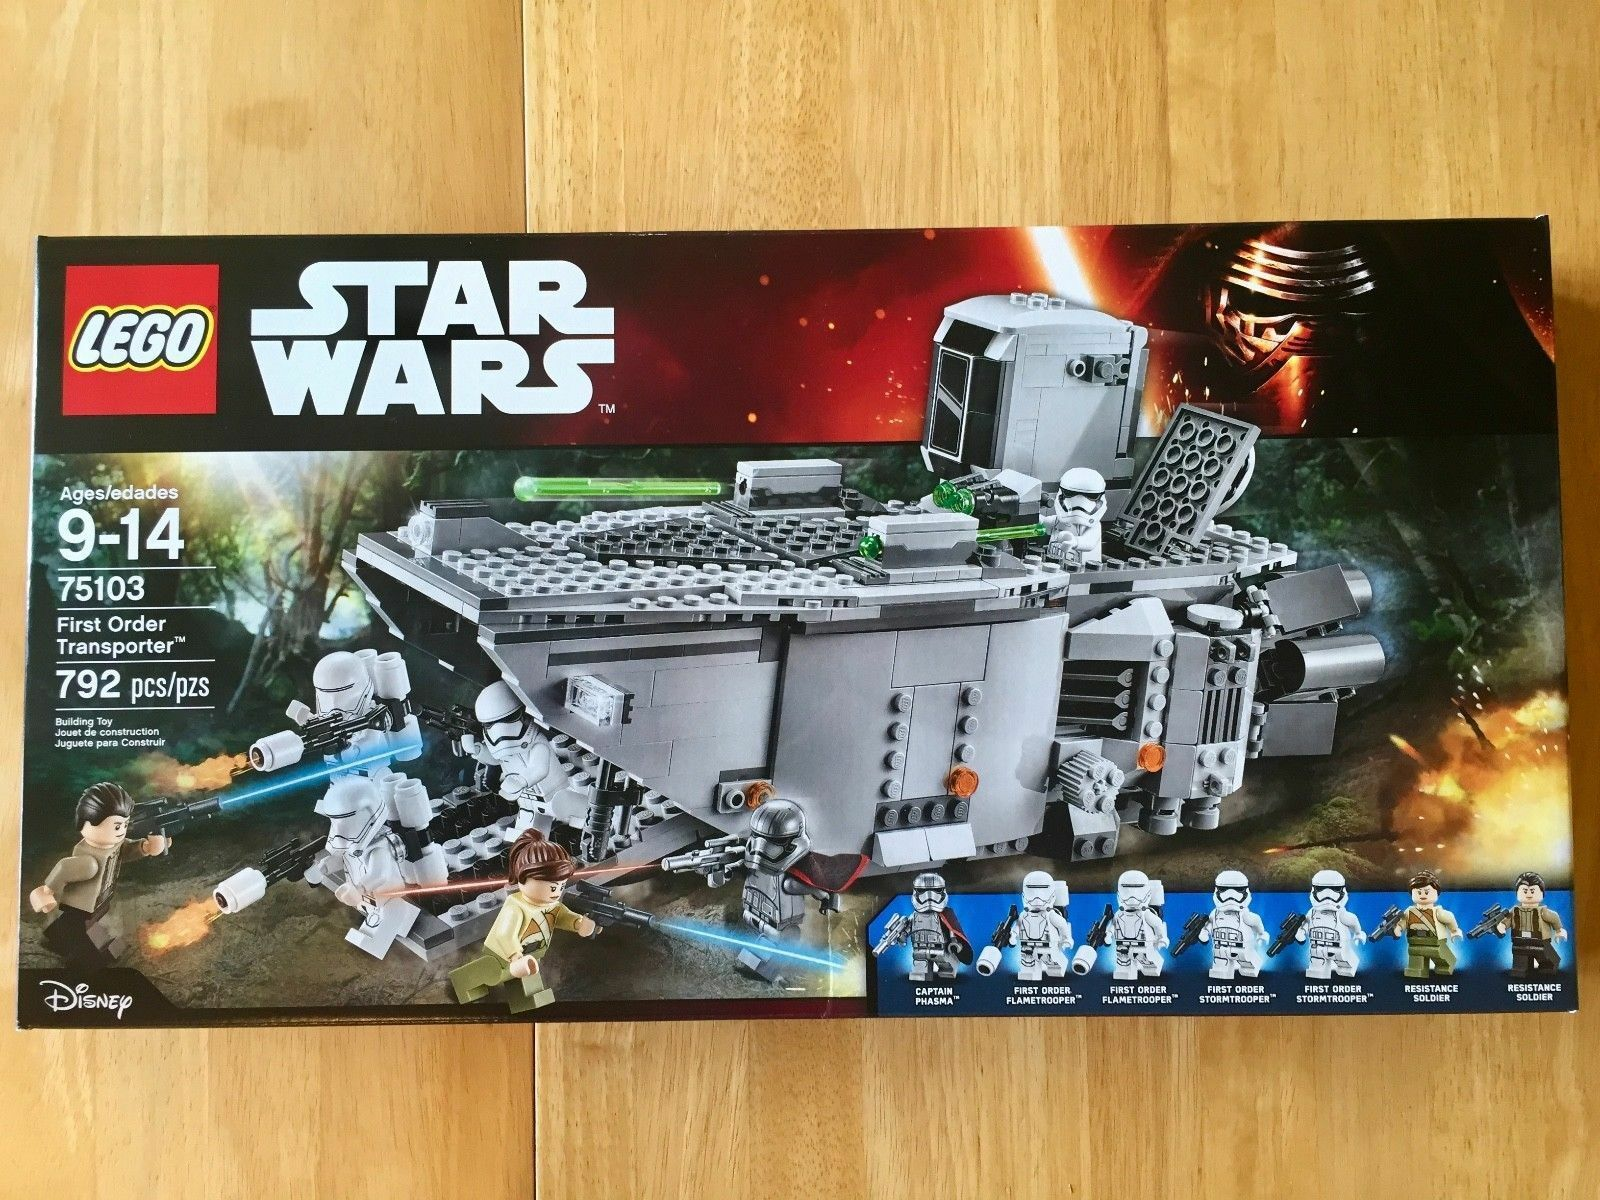 LEGO 75103 Star Wars First Order Transporter - New in Sealed Box